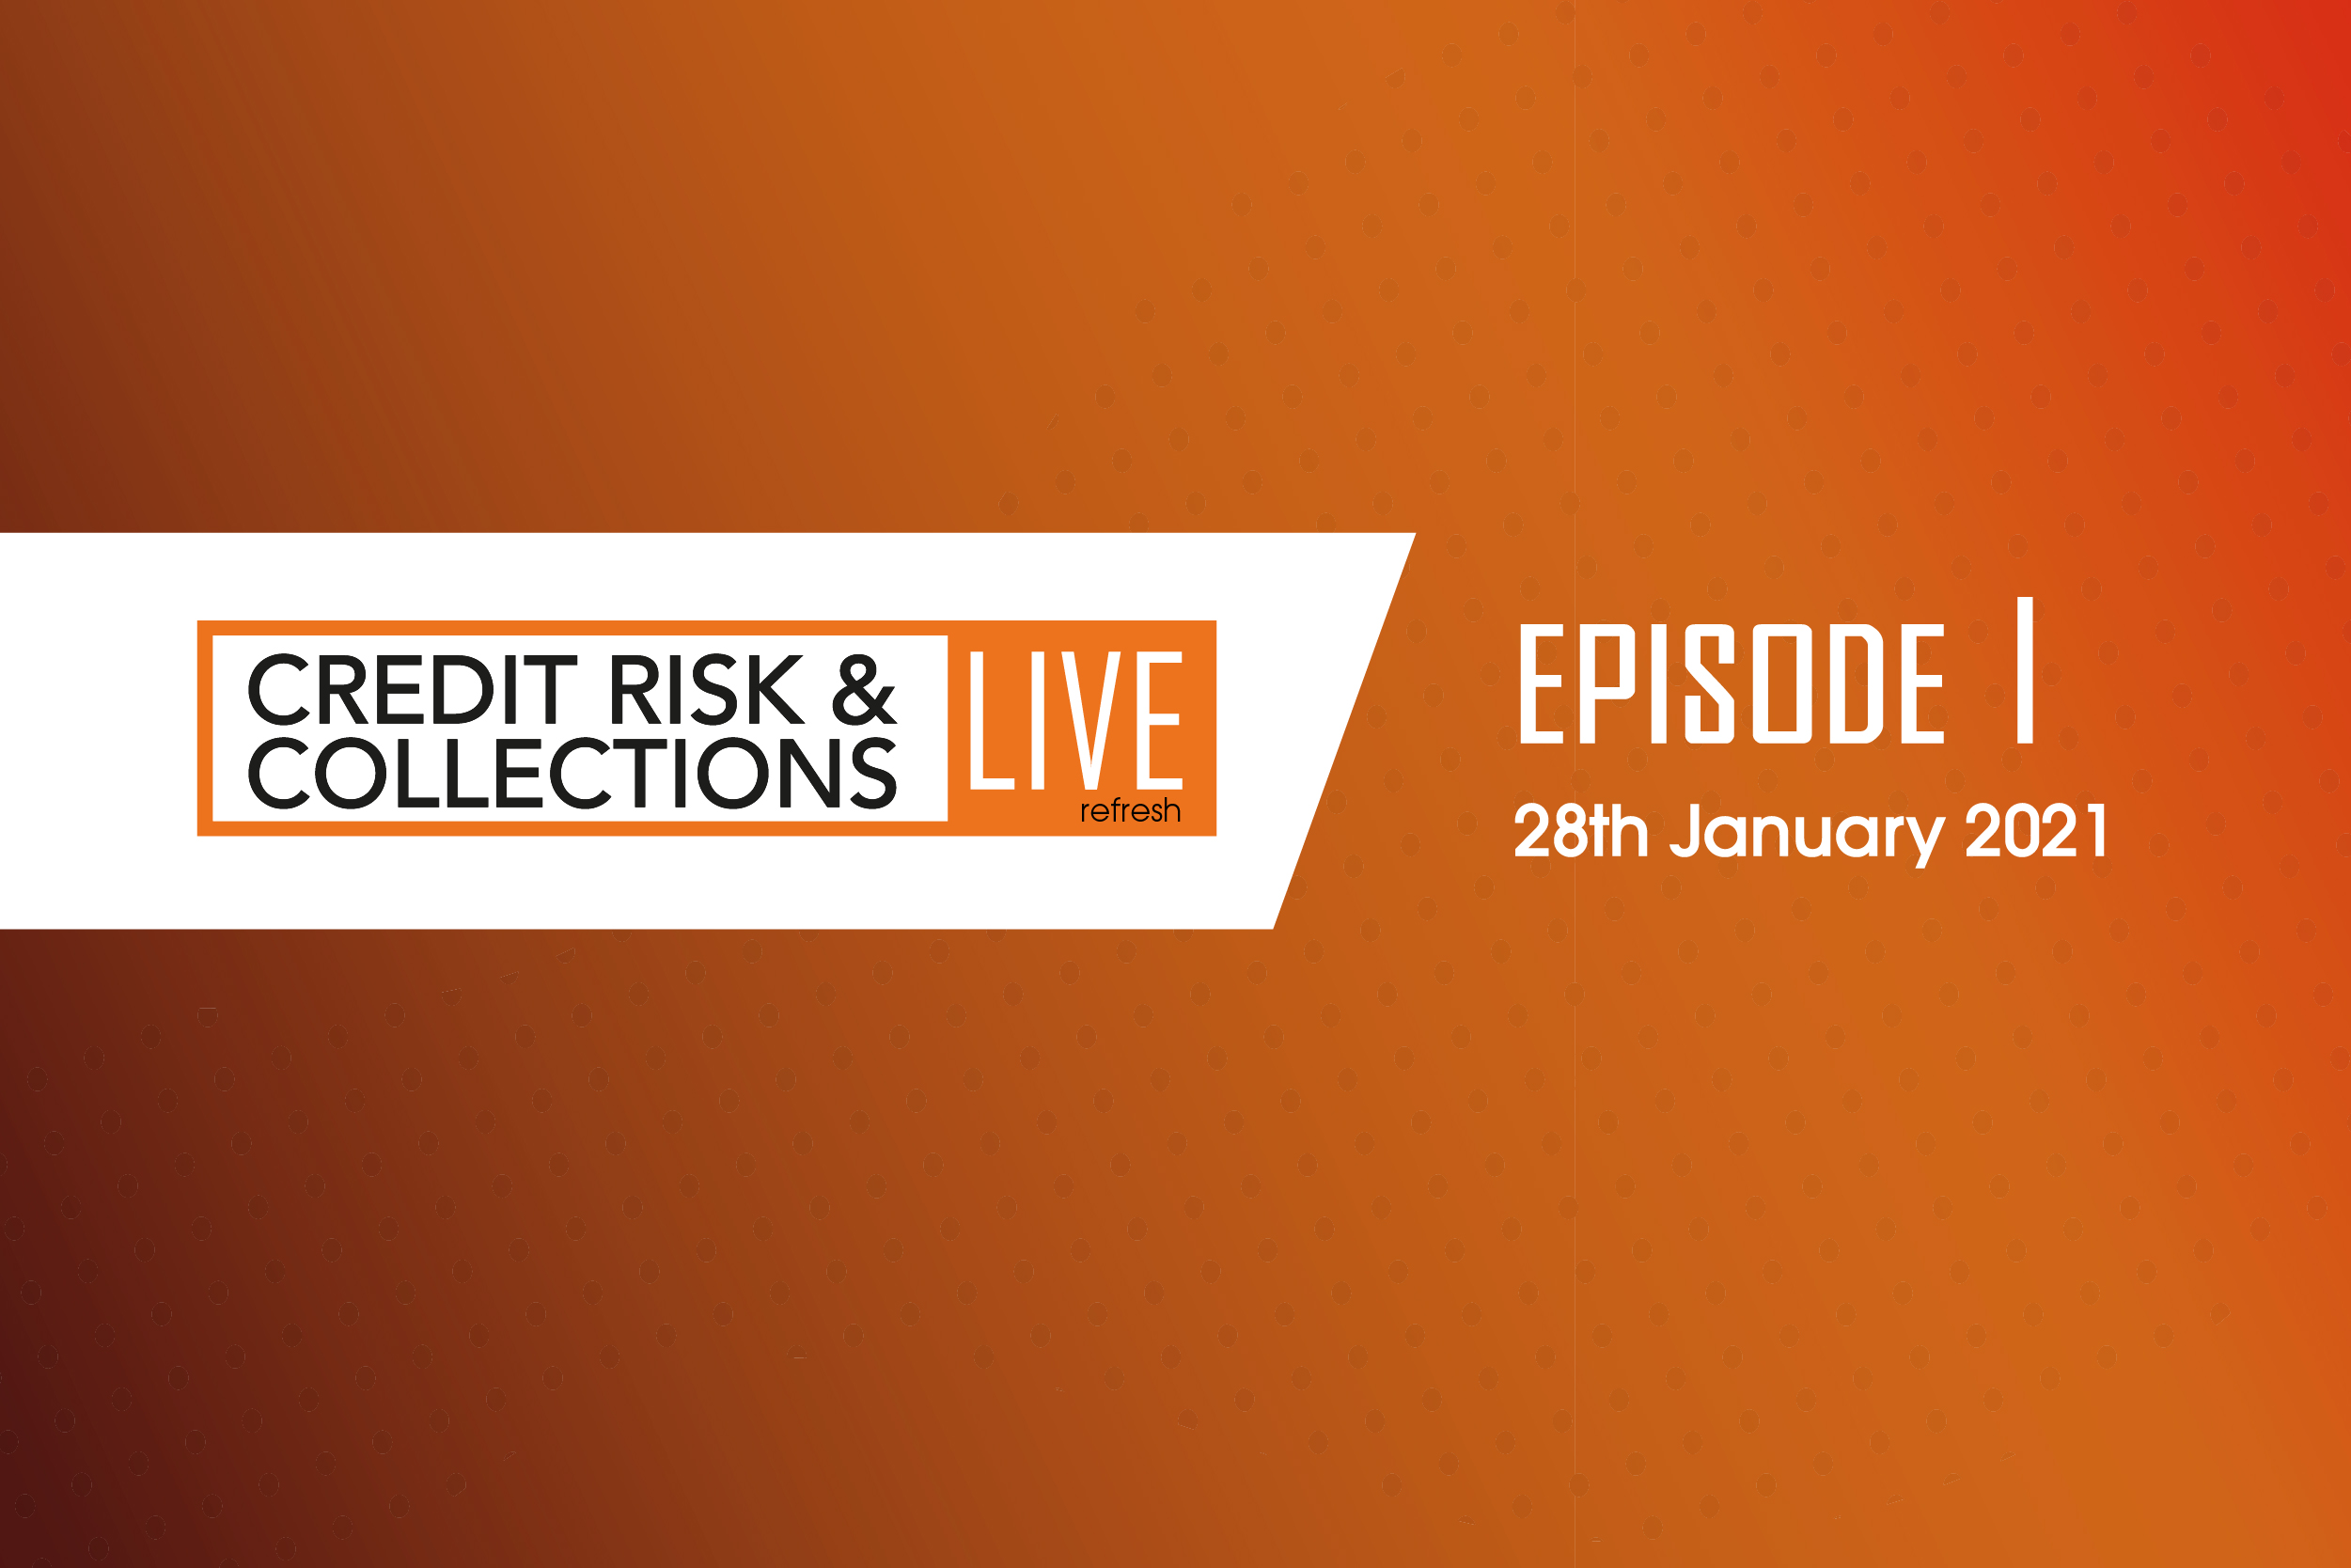 Credit Risk & Vulnerability Refresh - Episode 1 - Credit risk and strategy insight   /   Preparing for Breathing Space